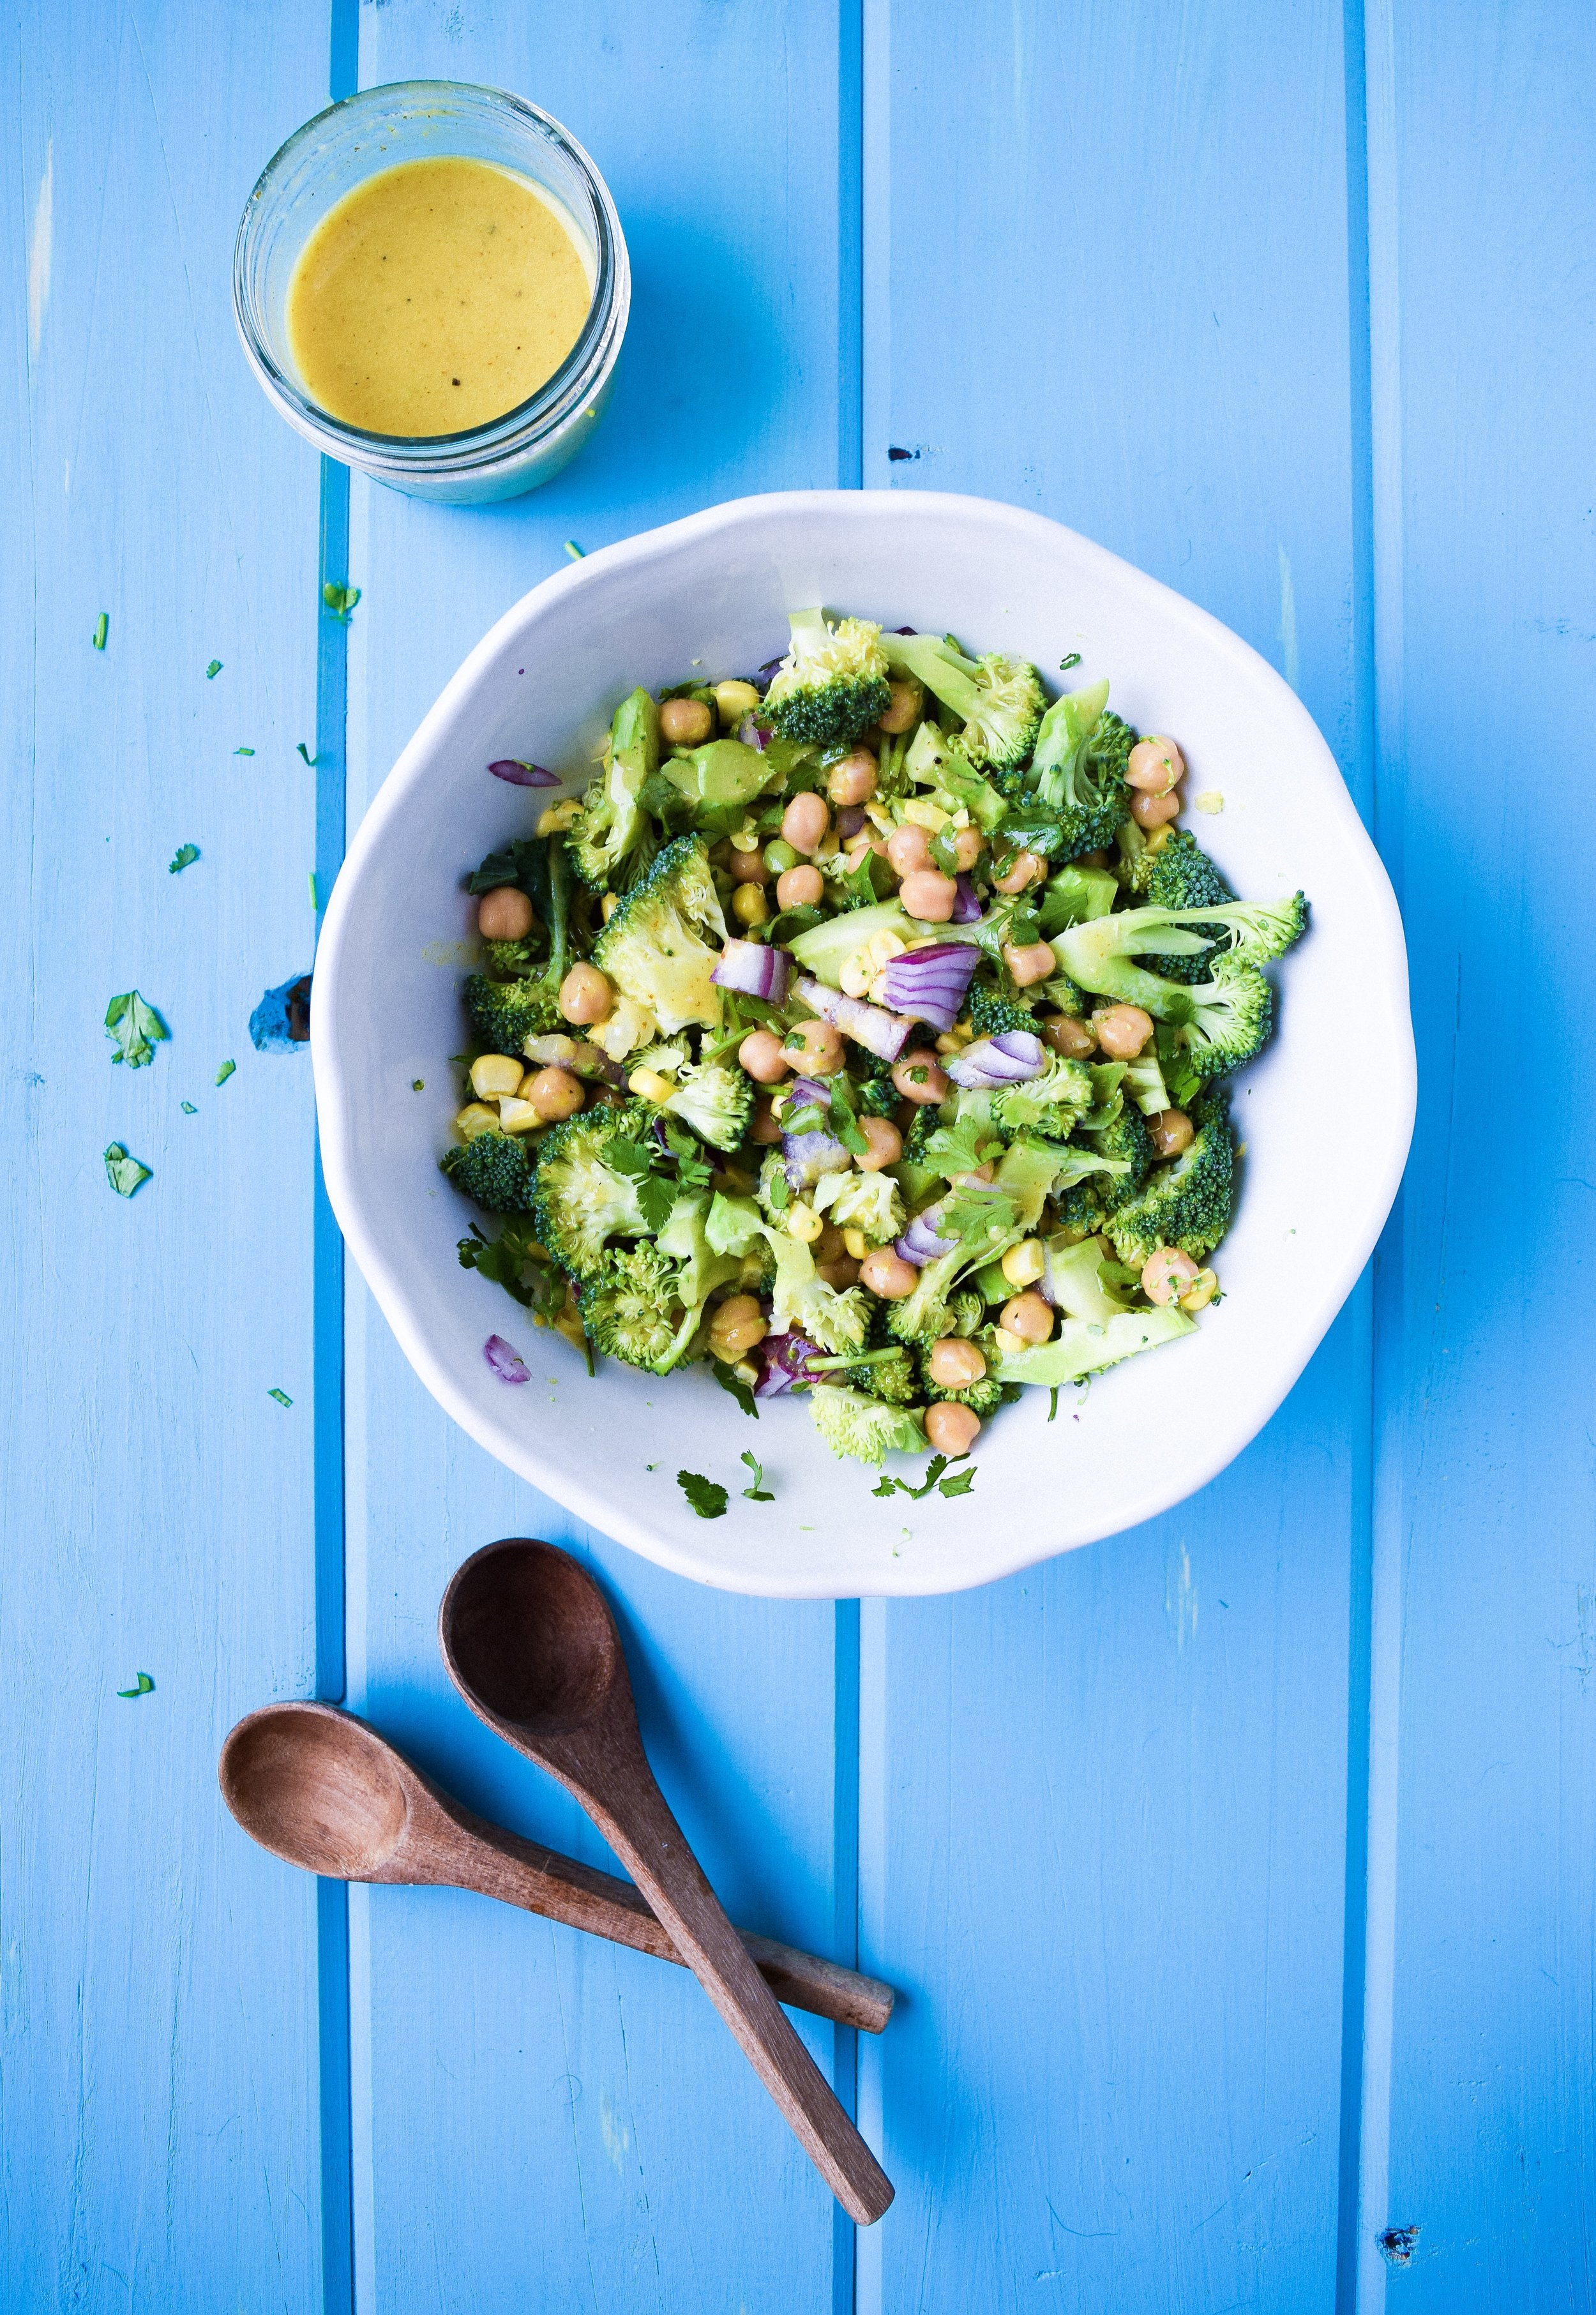 Chopped-Broccoli-Salad-Honey-Mustard-Vinaigrette.jpg